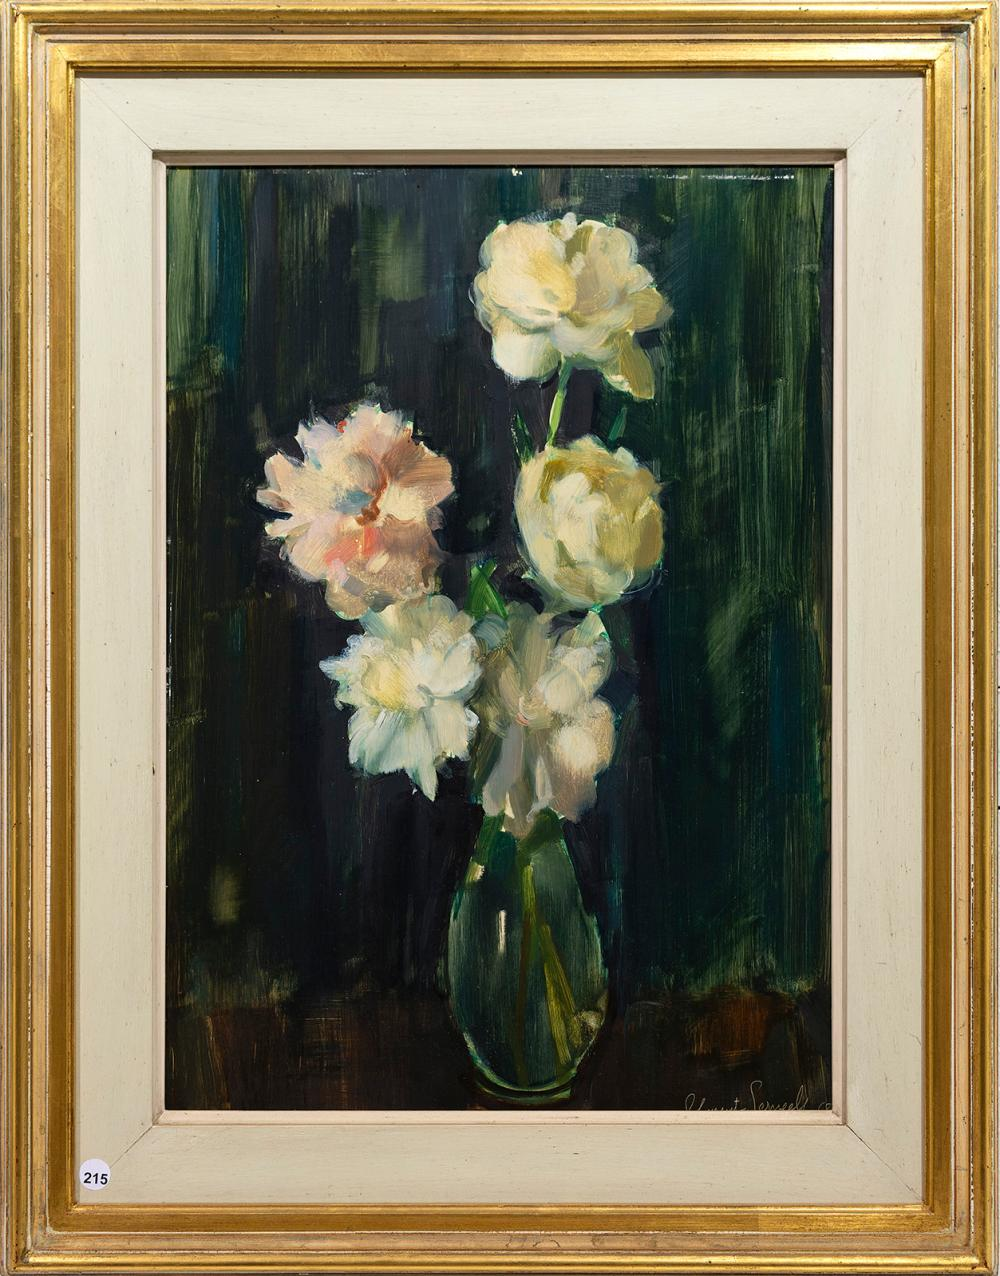 Clement Serneels (SA 1912 - 1991) Oil, Still Life White Roses, Signed & Dated '68, 60 x 42